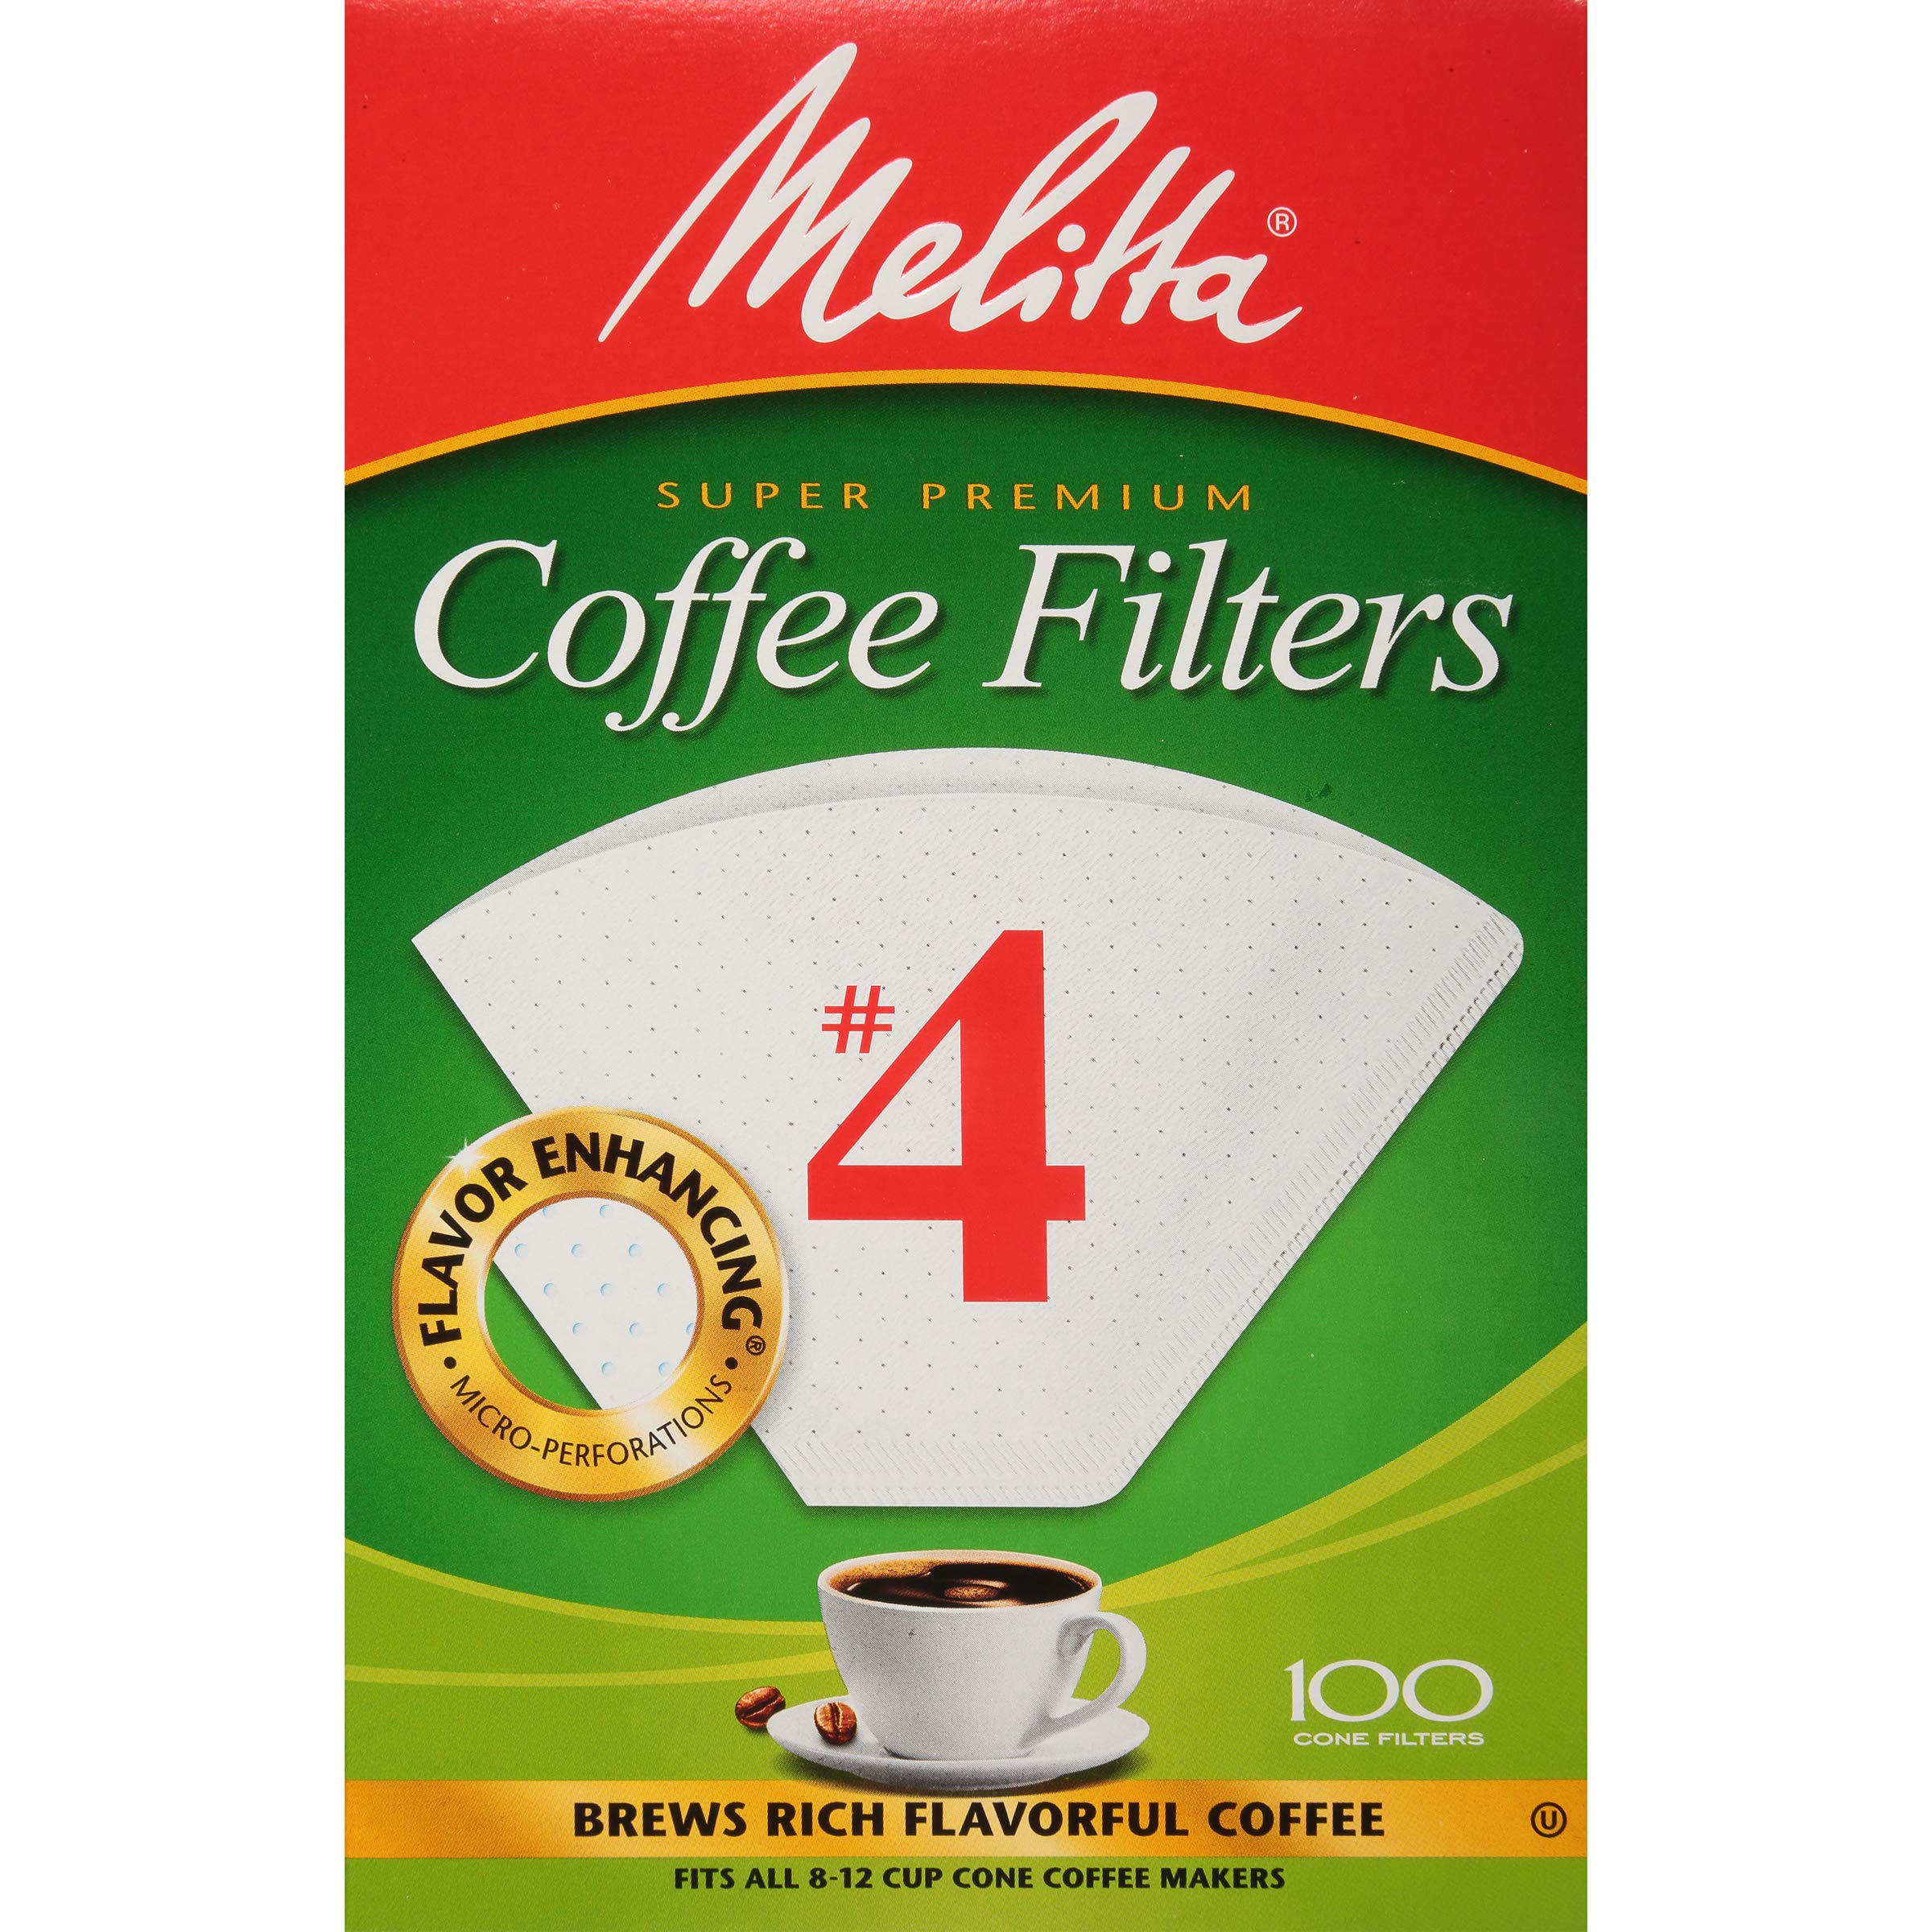 Melitta Cone Coffee Filter, White No. 4, 100 Count (Pack of 6)